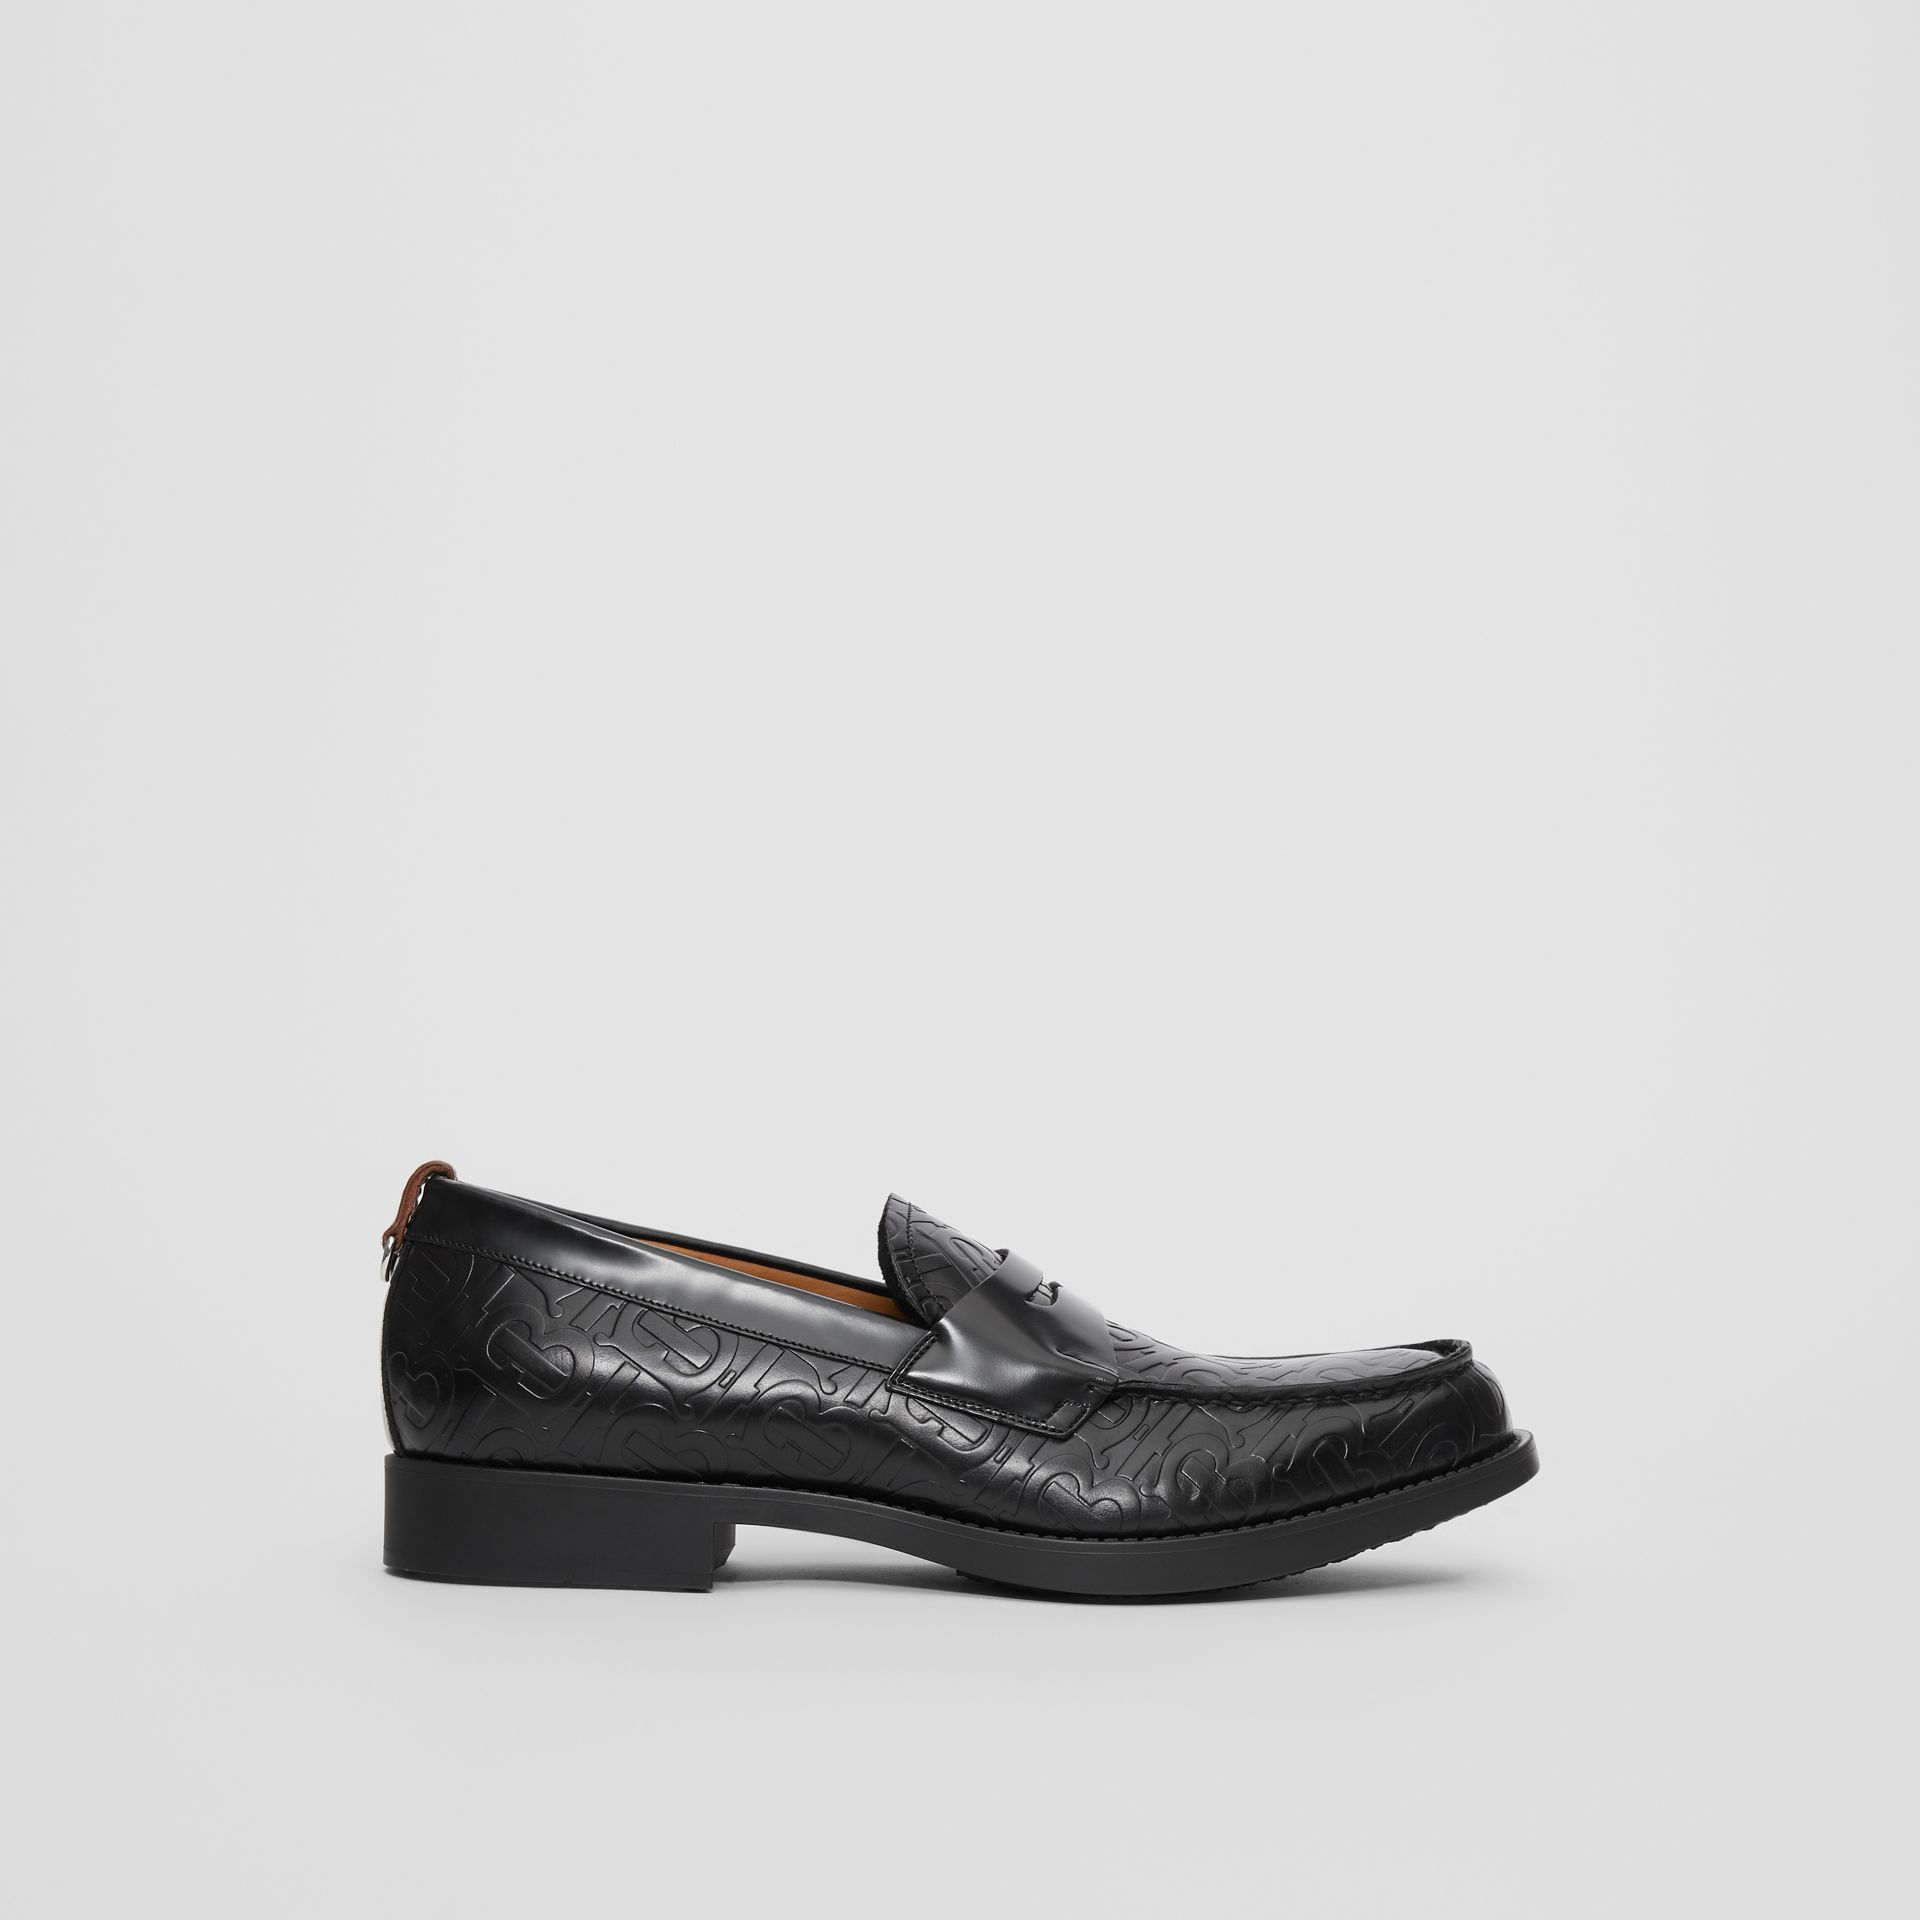 D-ring Detail Monogram Leather Loafers in Black - Men | Burberry Australia - gallery image 4